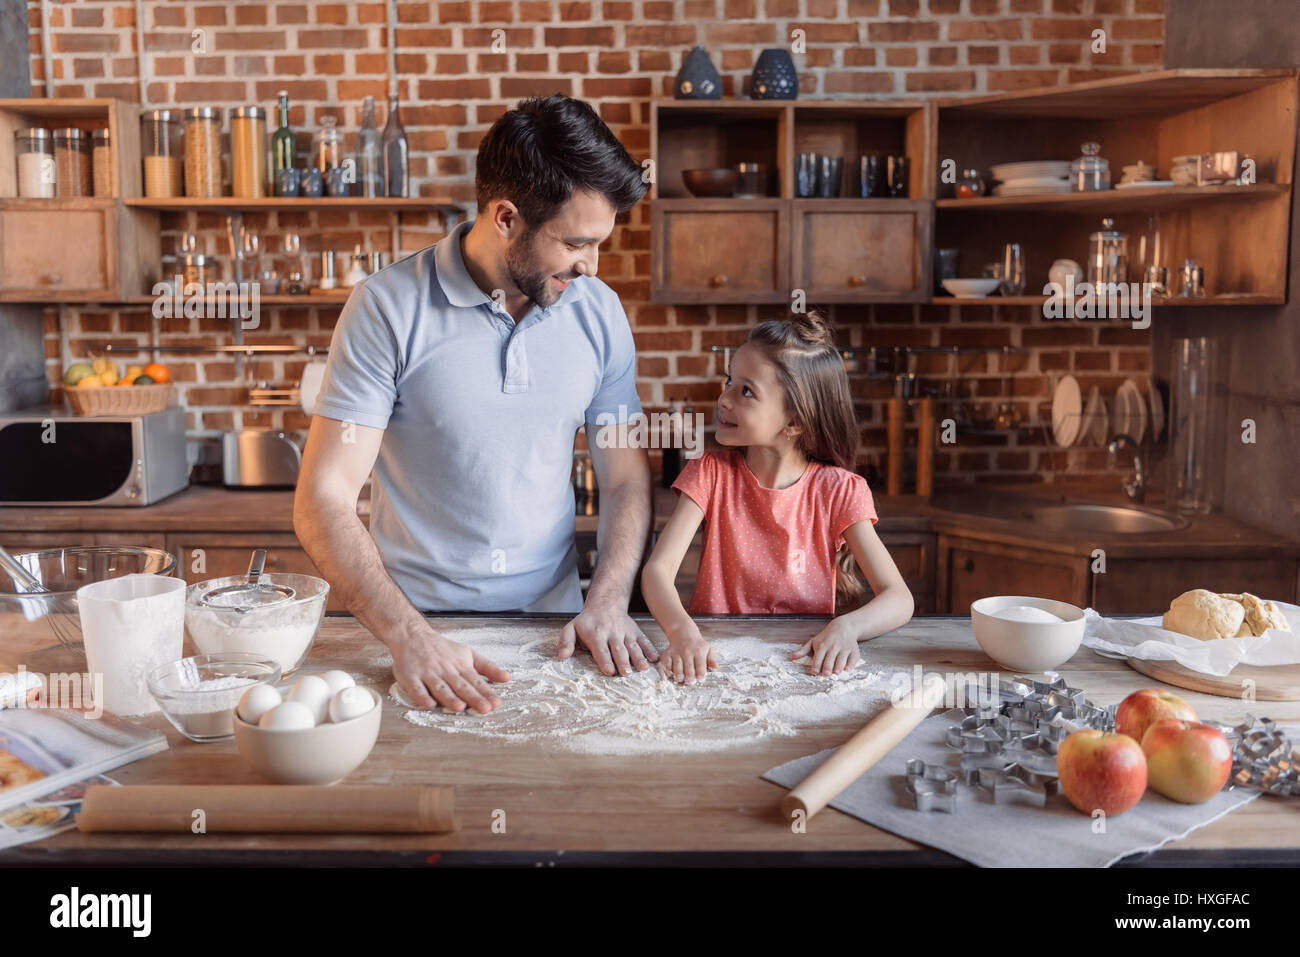 'Happy father and daughter cooking together and looking at each other in kitchen - Stock Image